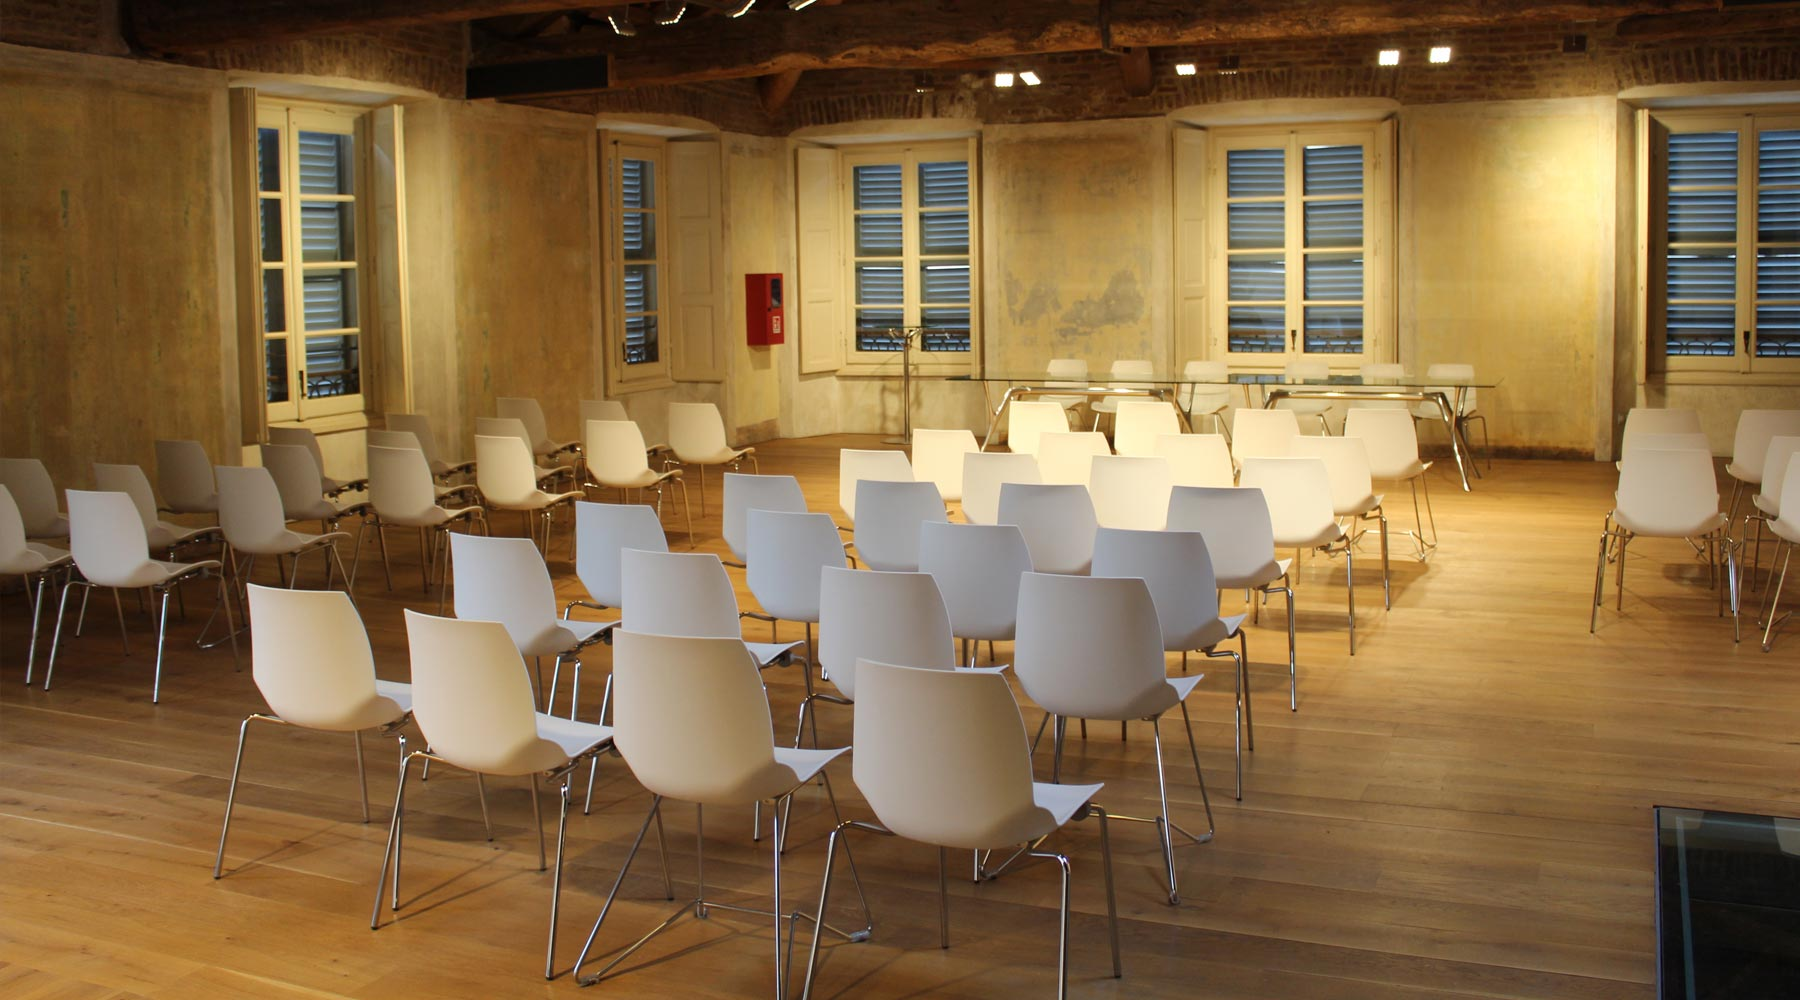 Training - chairs in a room